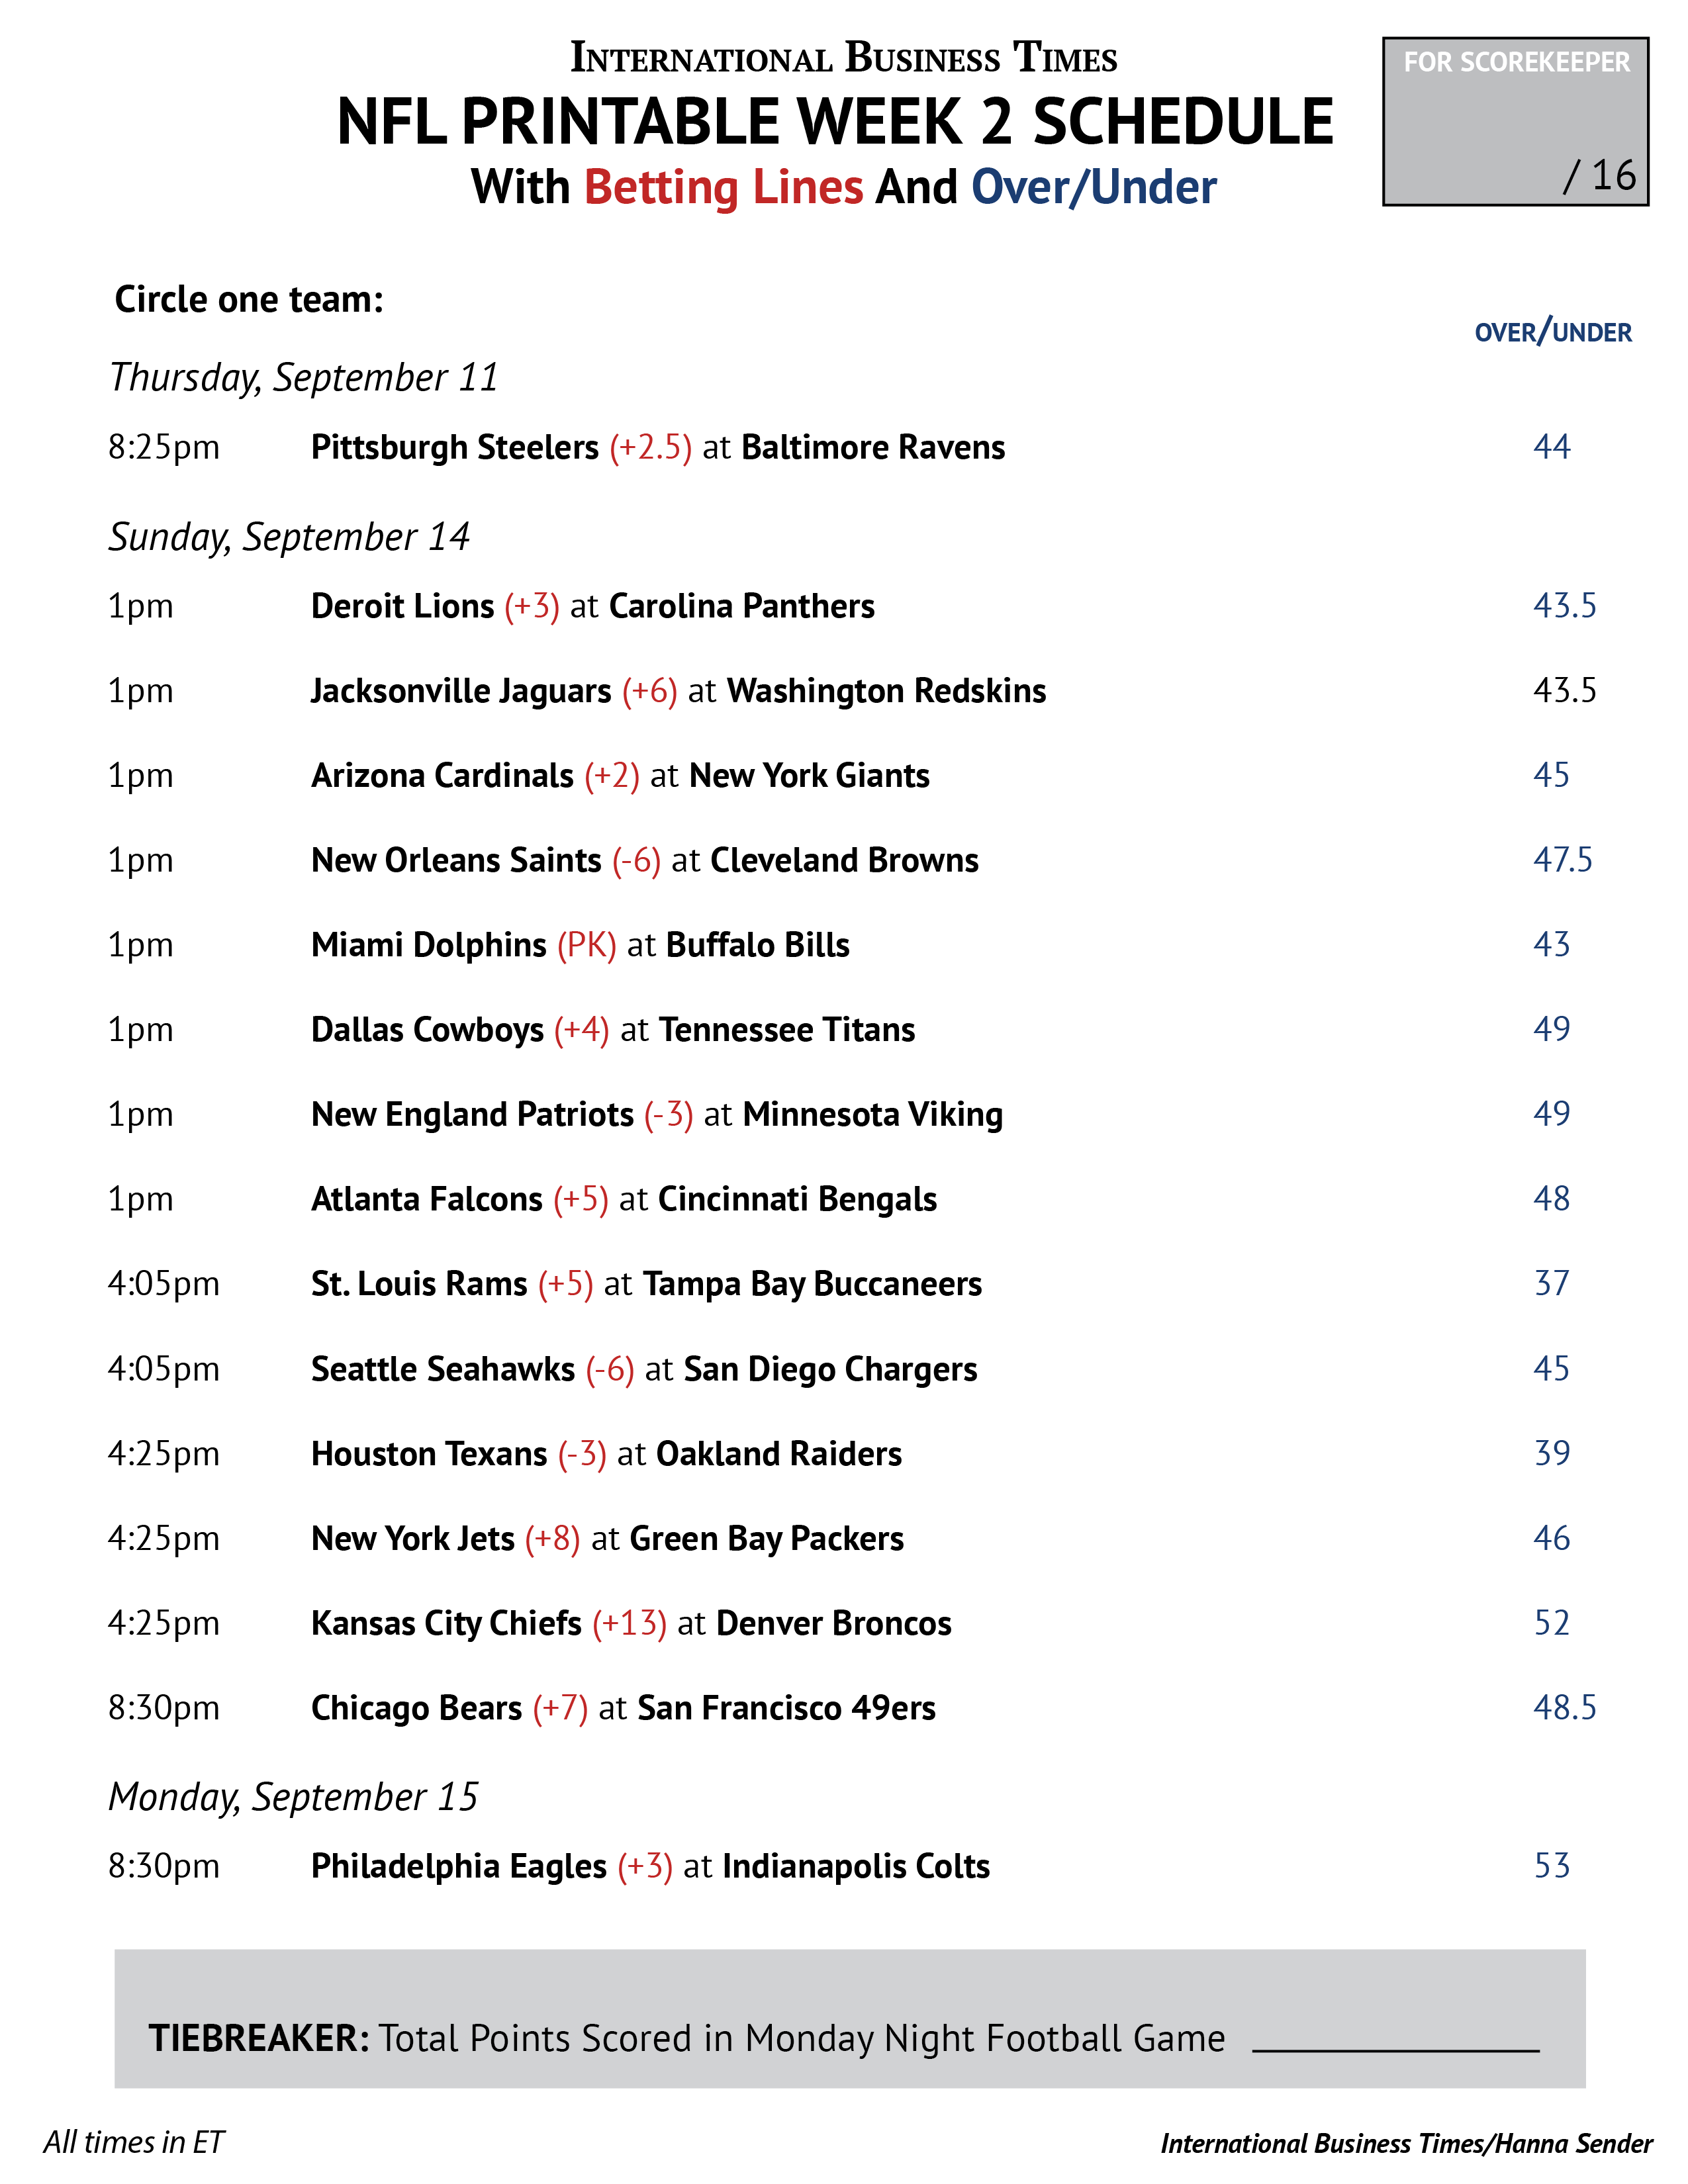 graphic regarding Nfl Week 2 Schedule Printable known as NFL Business Pool 2014: Printable 7 days 2 Agenda With Betting